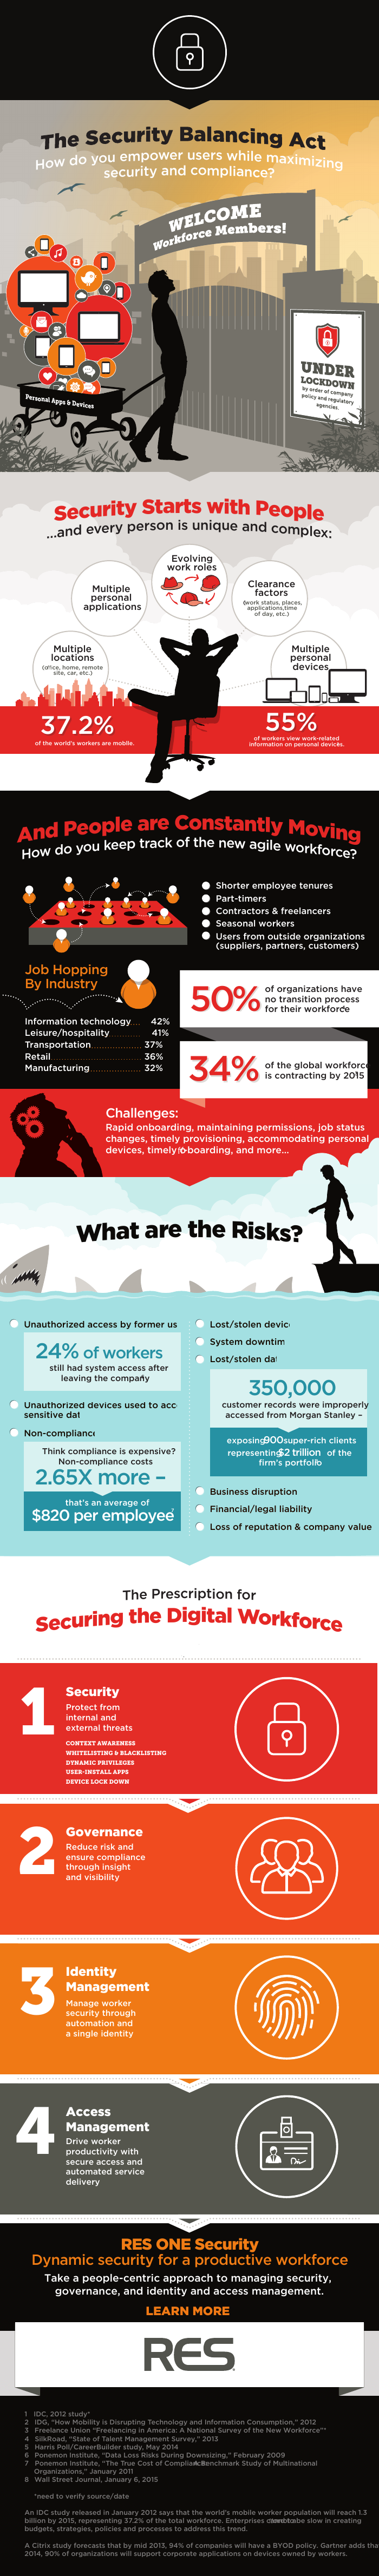 [Infographic] The Security Balancing Act